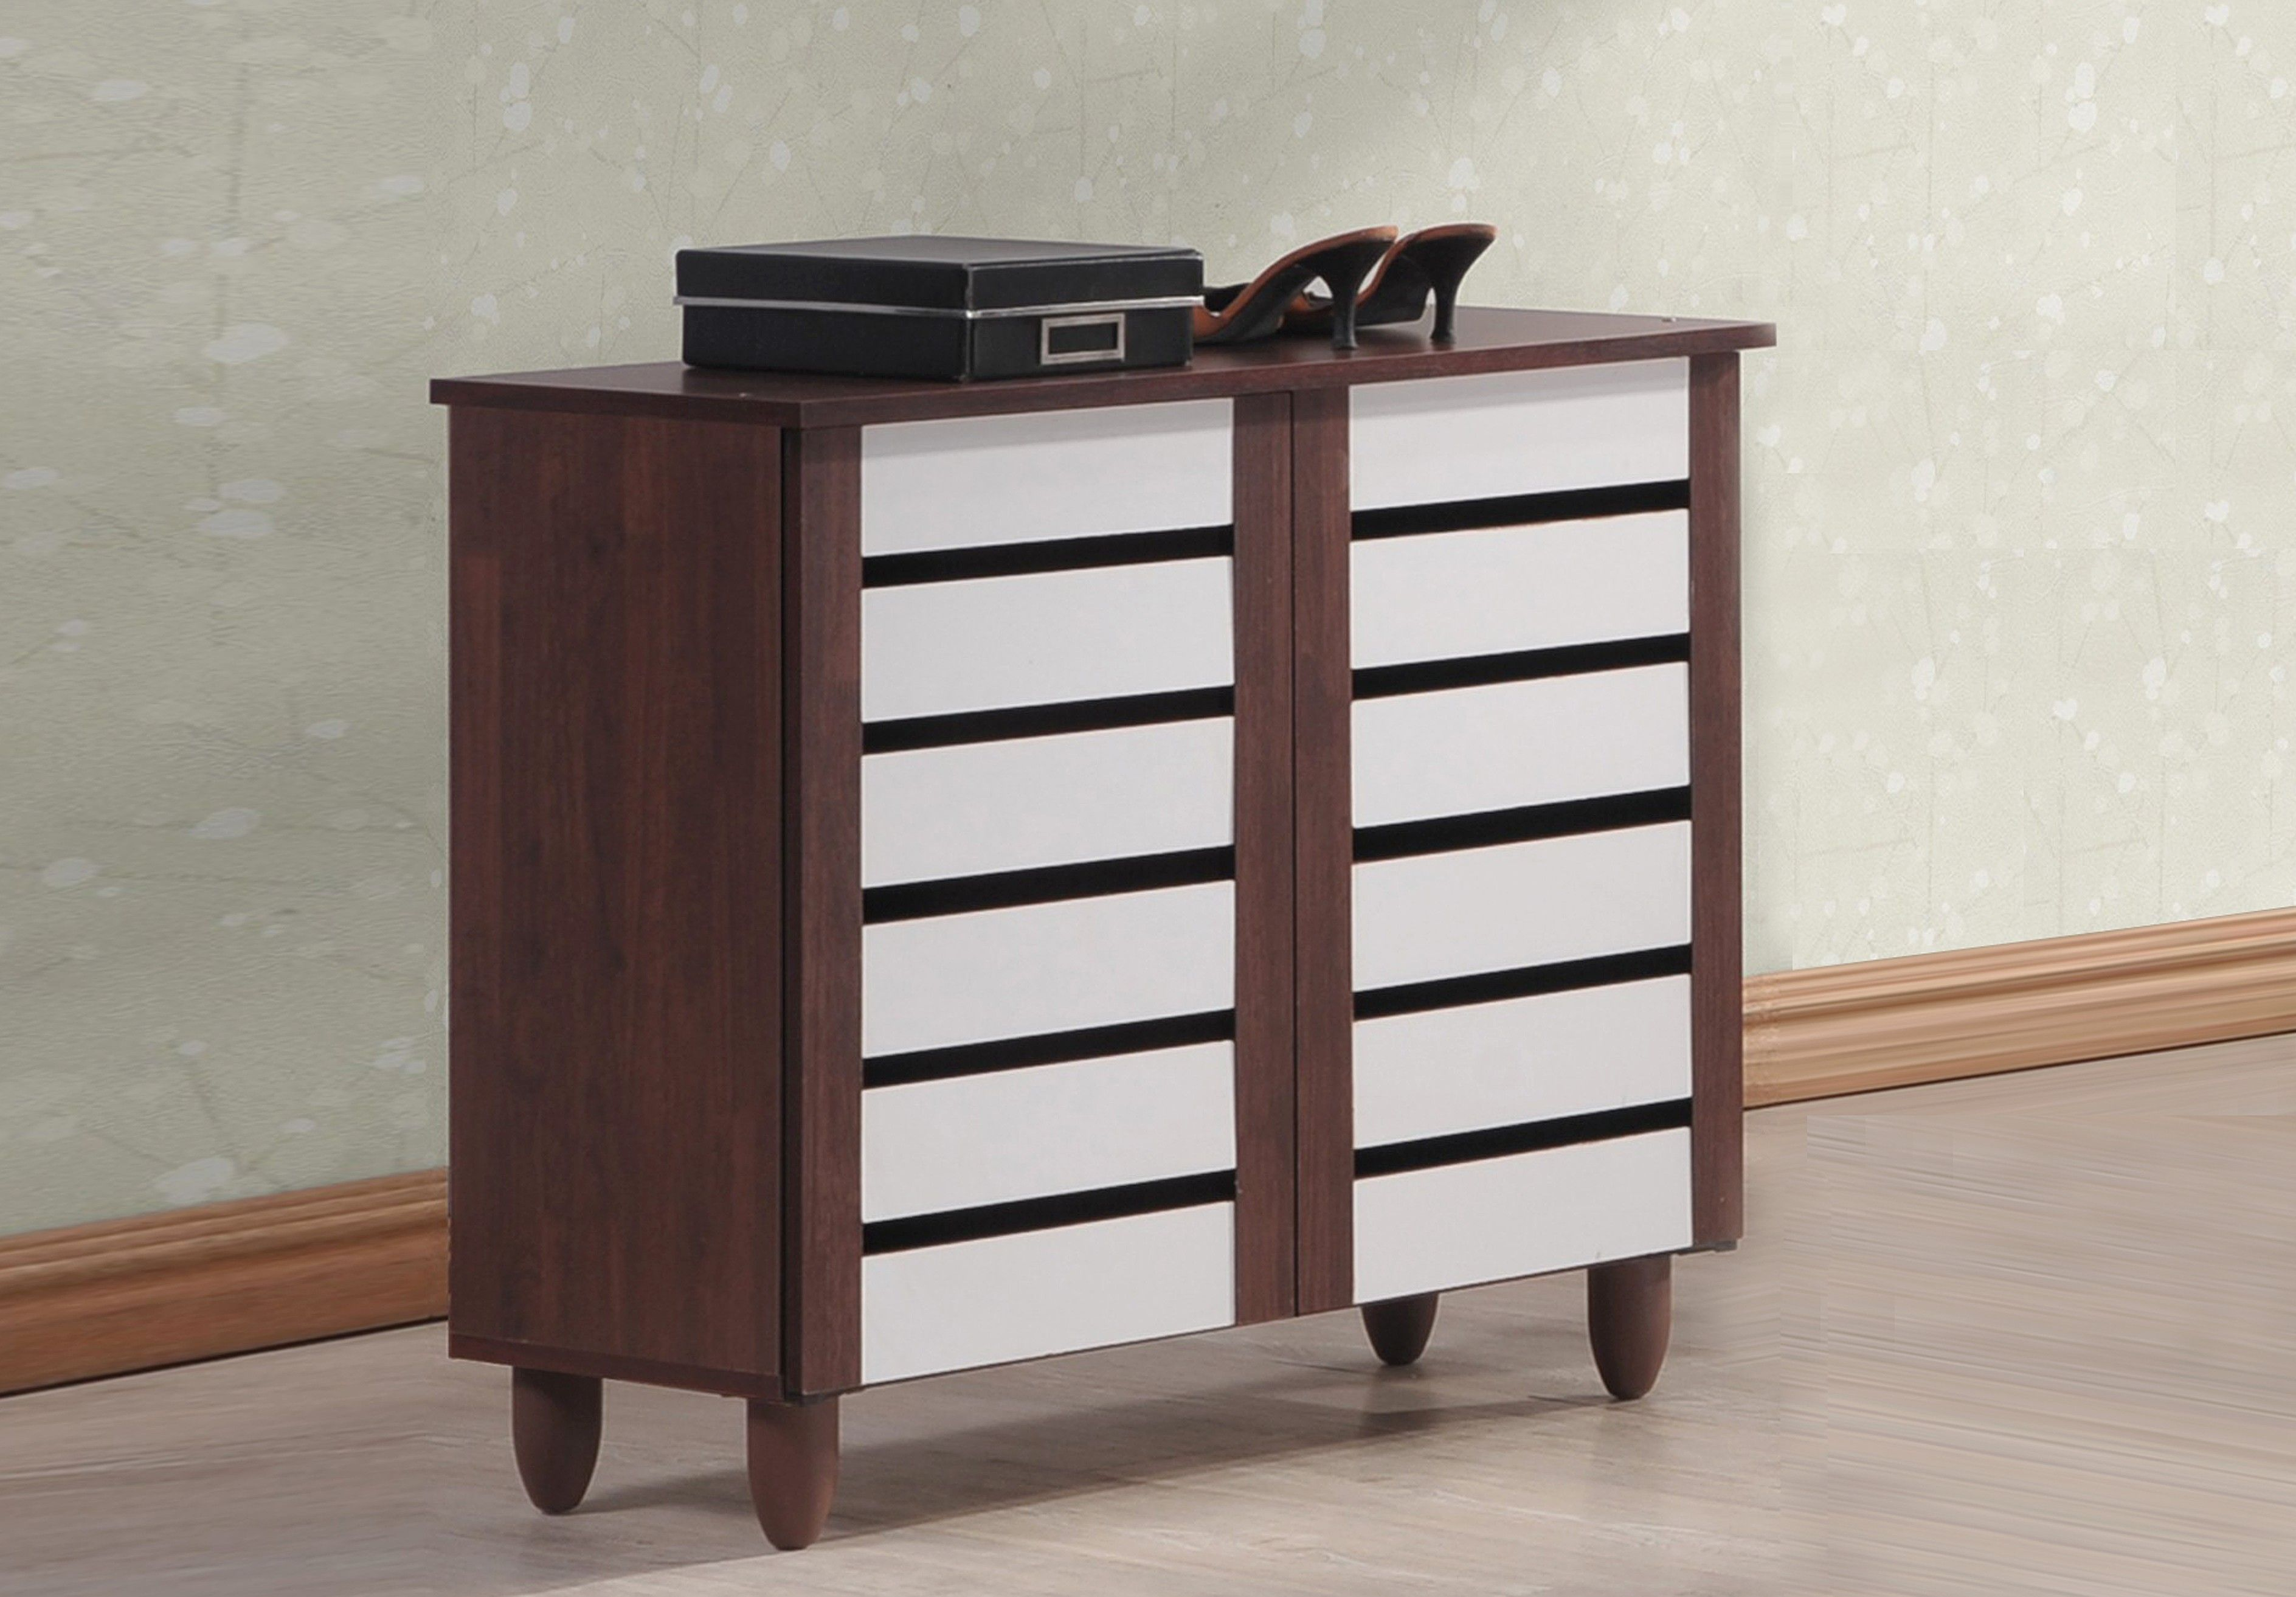 shoes cabinets furniture. shoe cabinet storage modern organize wood furniture rack shelf contemporary new shoes cabinets